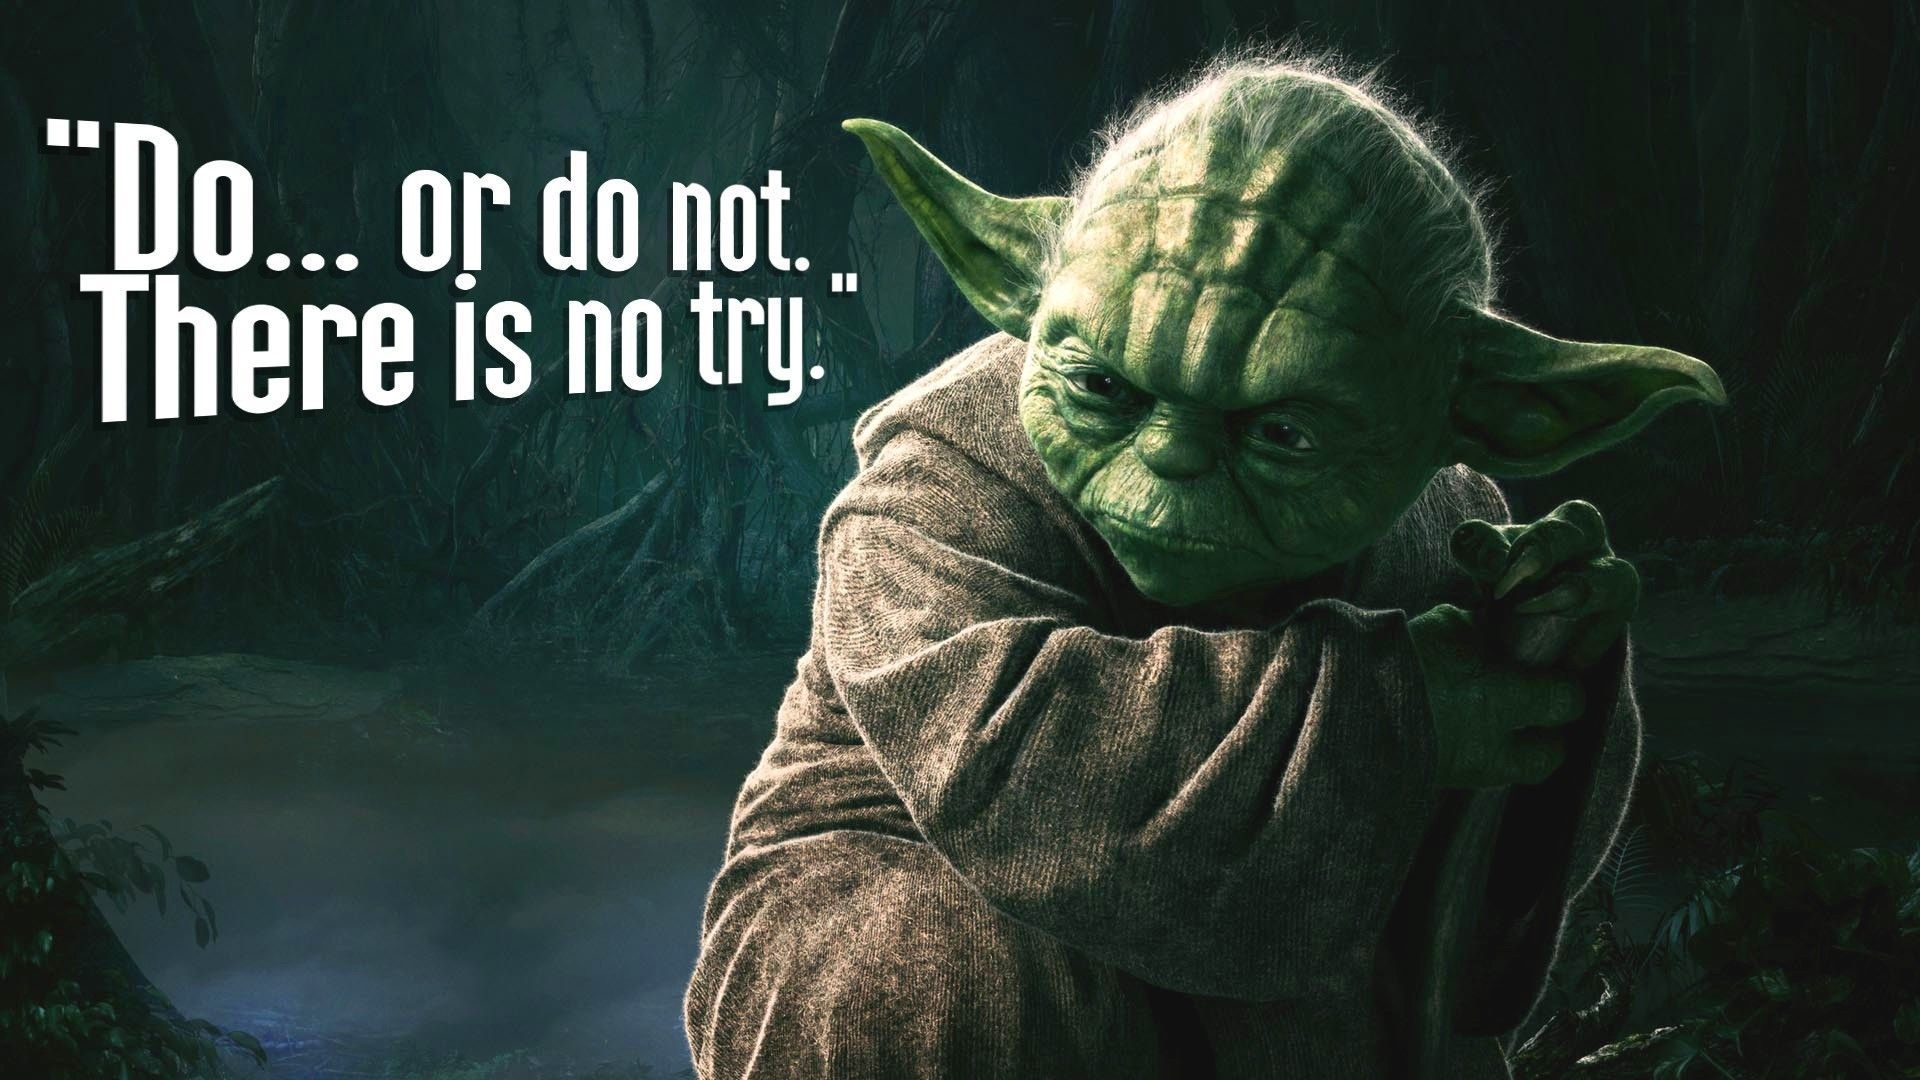 Yoda Quotes Wallpapers - Top Free Yoda Quotes Backgrounds ...